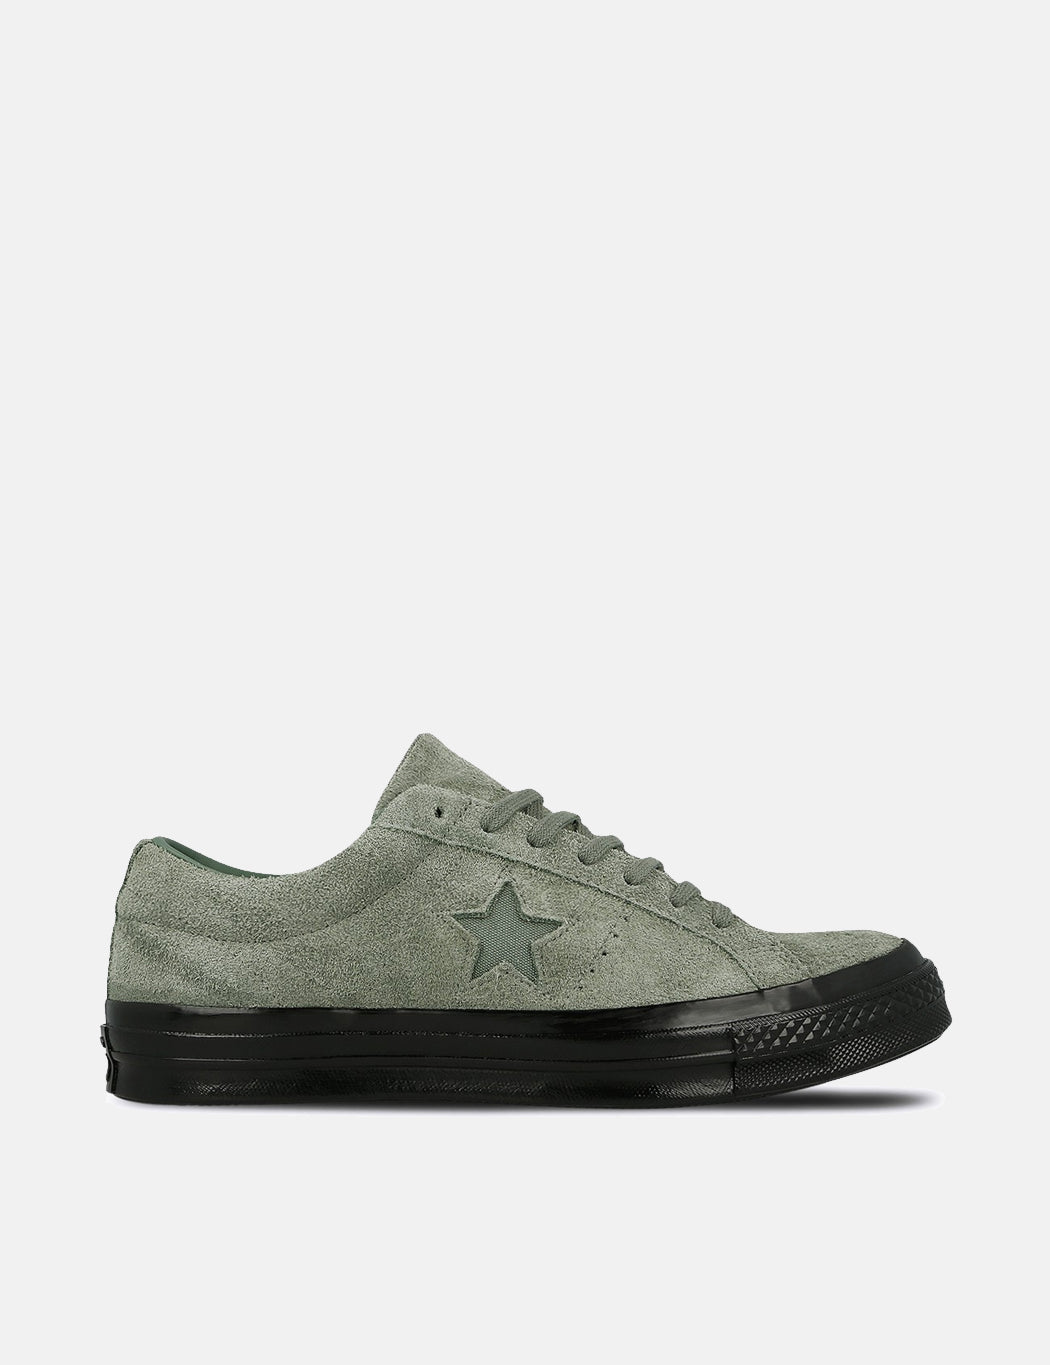 Converse One Star Ox Low Suede (163373C) in Vintage Lichen Green Black 53846662f